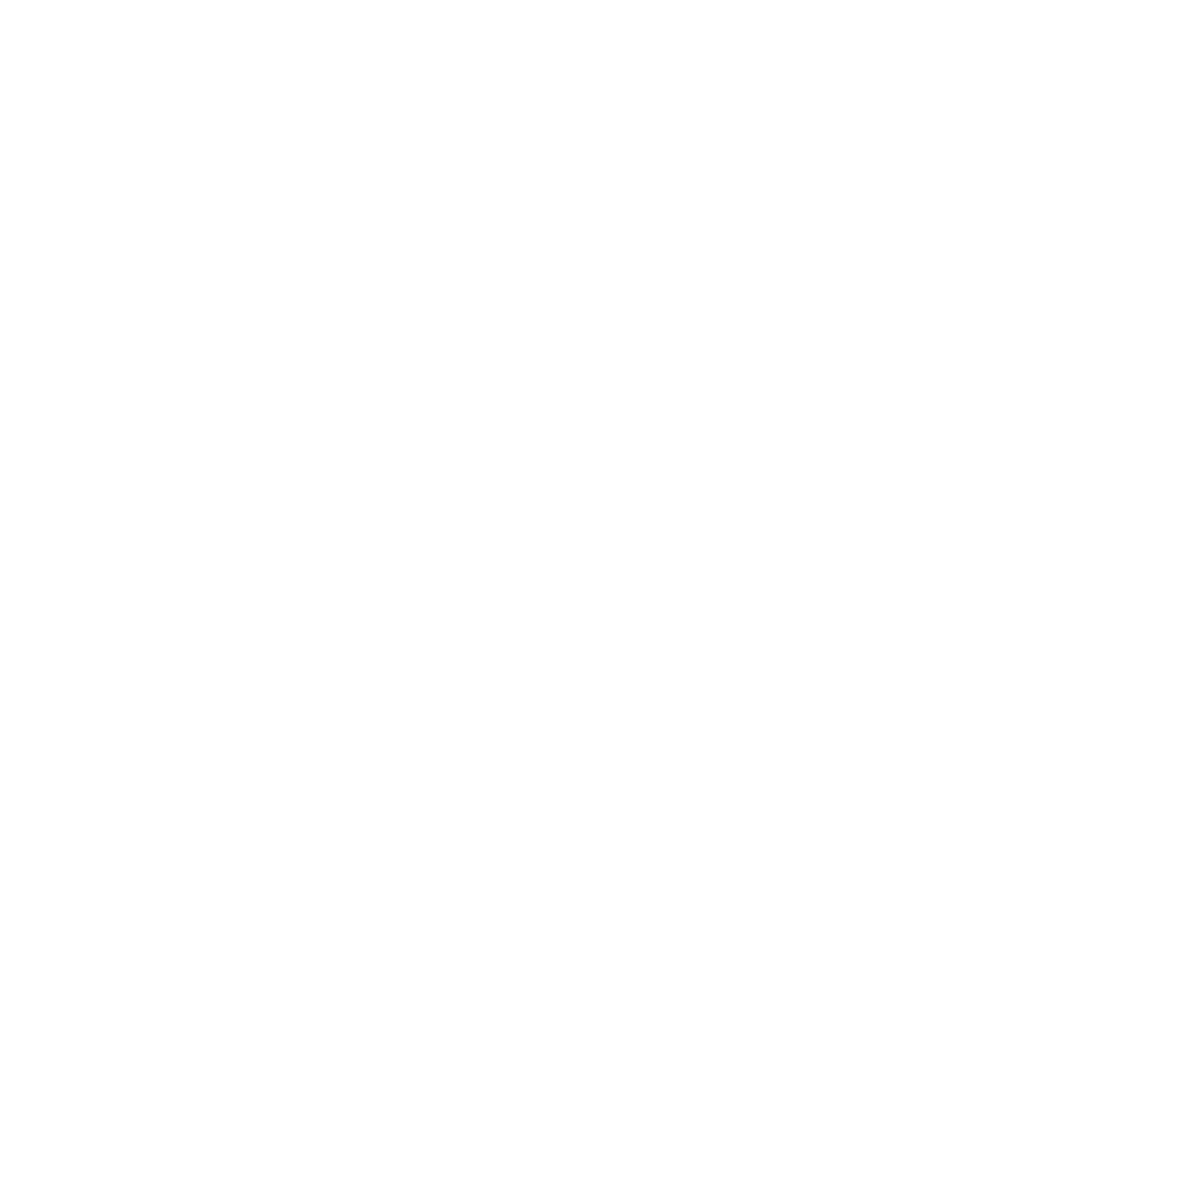 Flagship - The House Of Simple Pleasures - Sydney